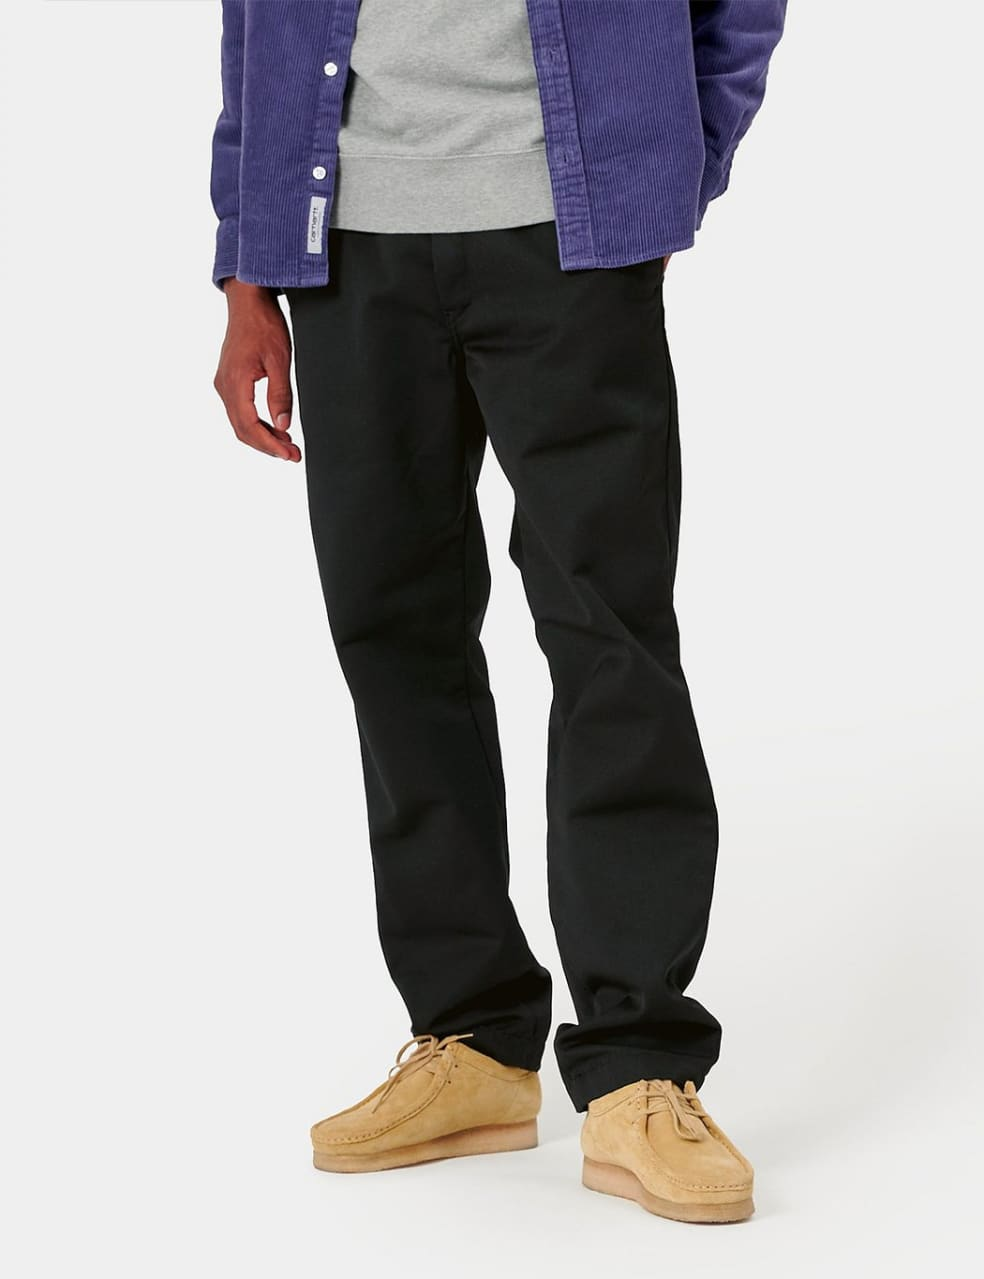 Carhartt-WIP Master Pant (Denison Twill, 8.8 oz) - Black rinsed   Trousers by Carhartt WIP 1